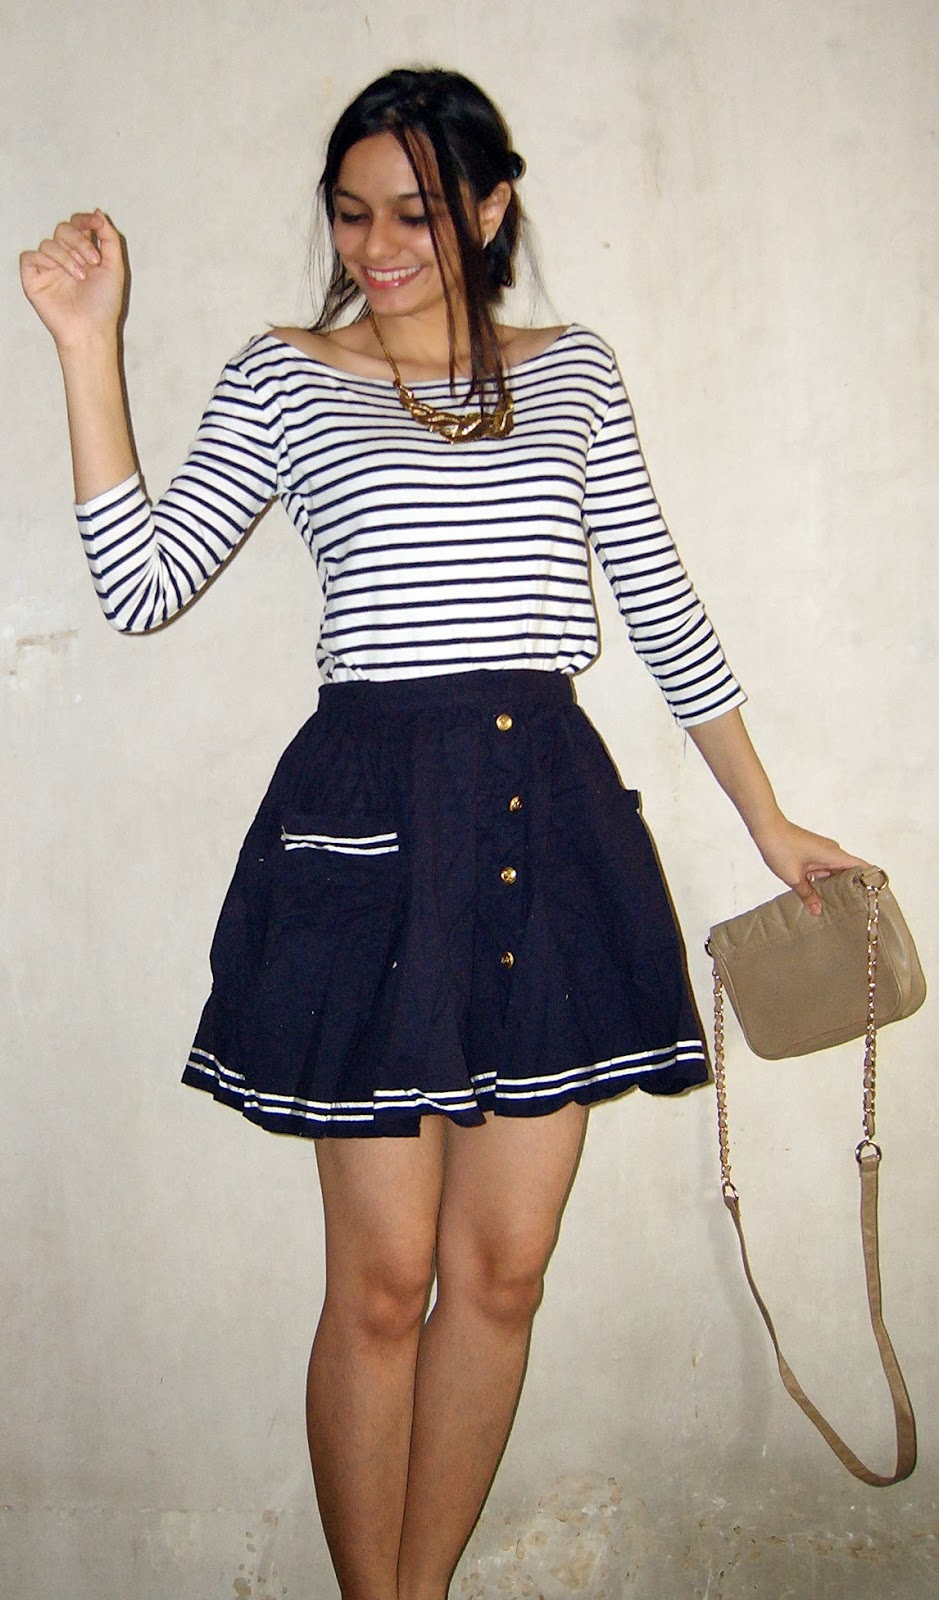 how to wear skater skirts, nautical, how to do nautical look, navy look, navy blue skirt, white striped tshirt, short skirts, street shopping, topshop skirt, mumbai streetstyle